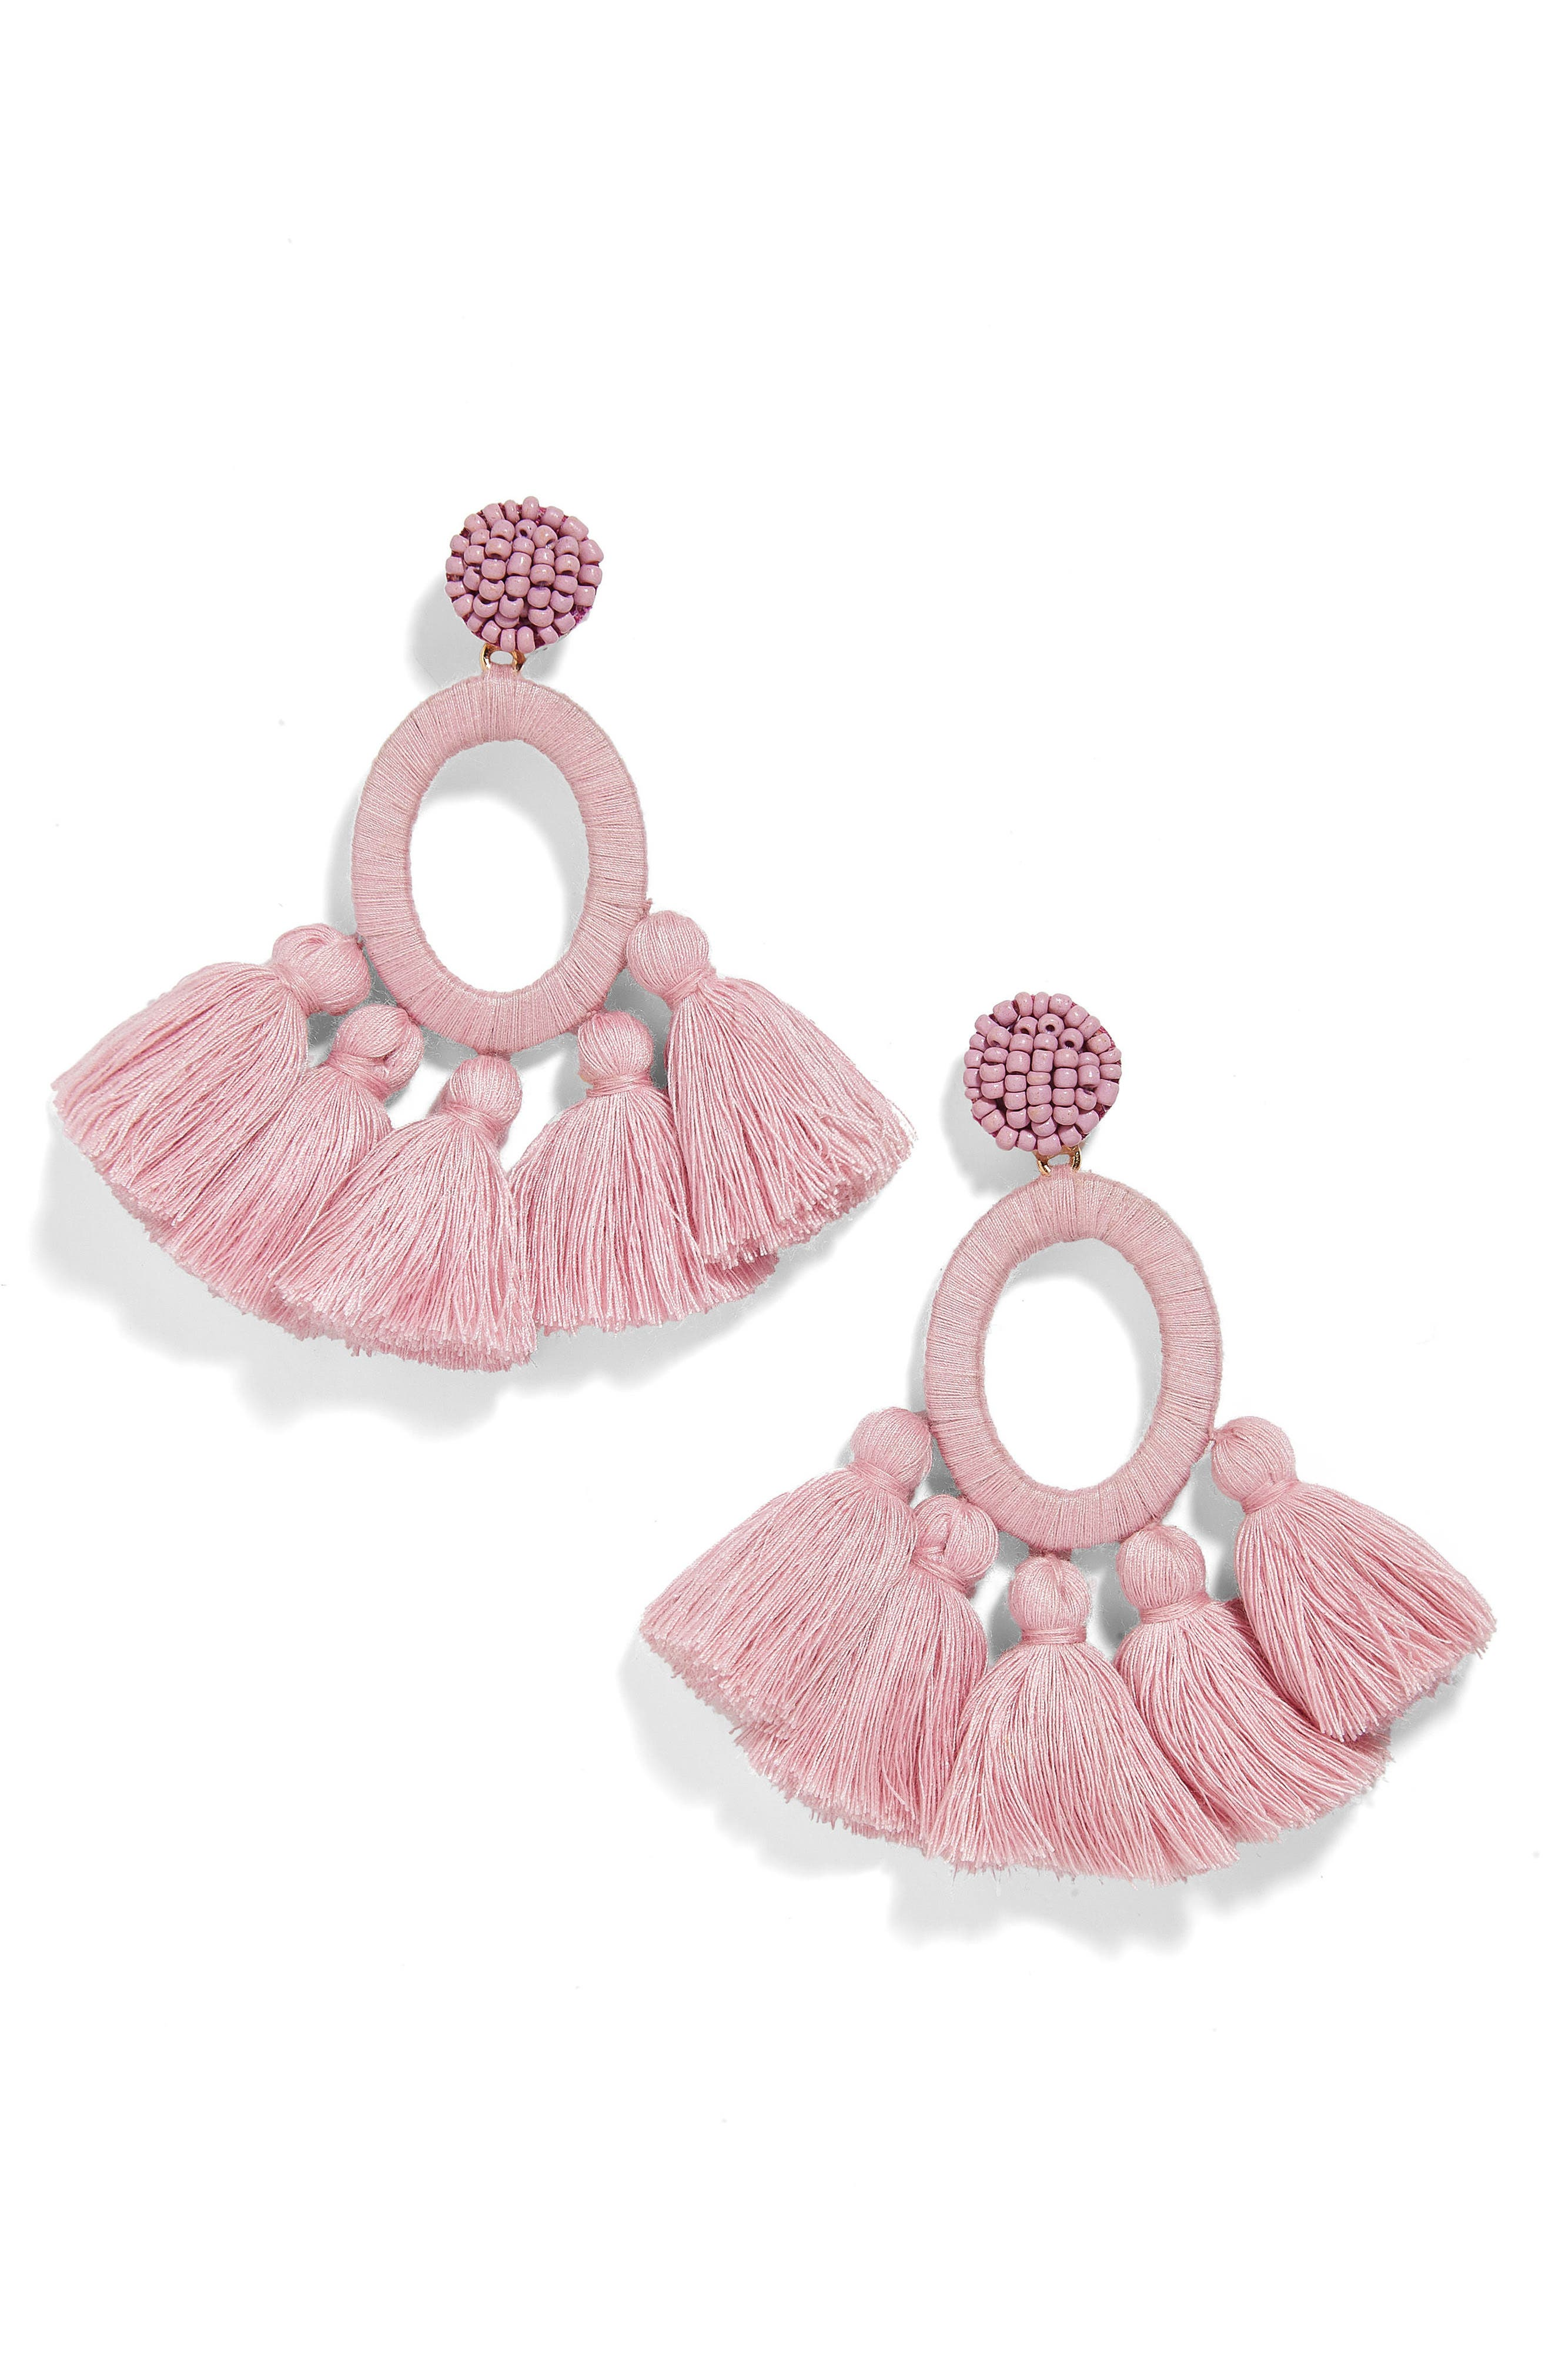 Abacos Tassel Earrings,                             Main thumbnail 1, color,                             Blush